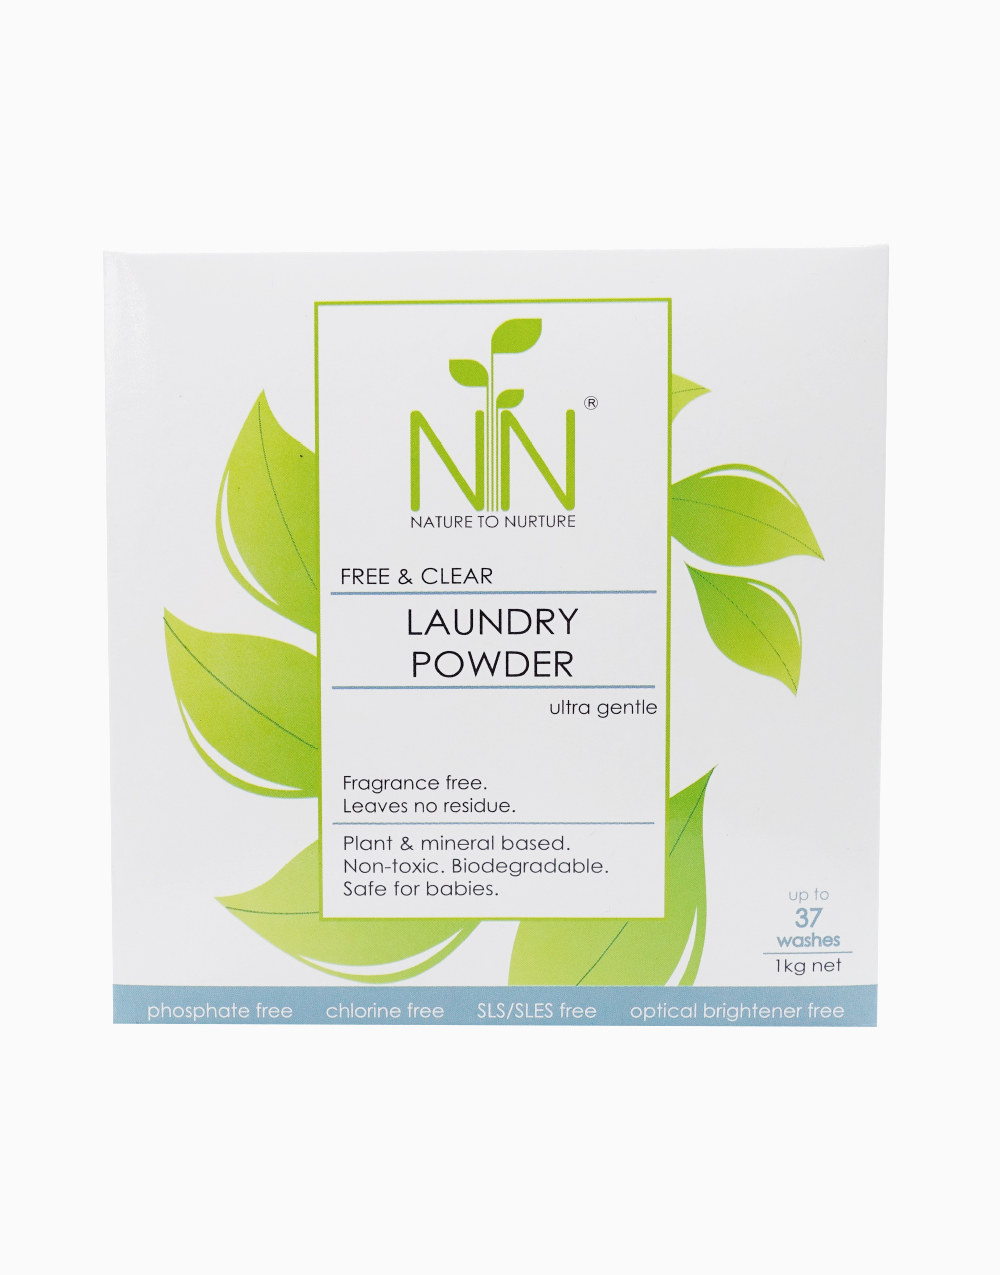 Free & Clear Laundry Powder Ultra Gentle (1kg) by Nature to Nurture